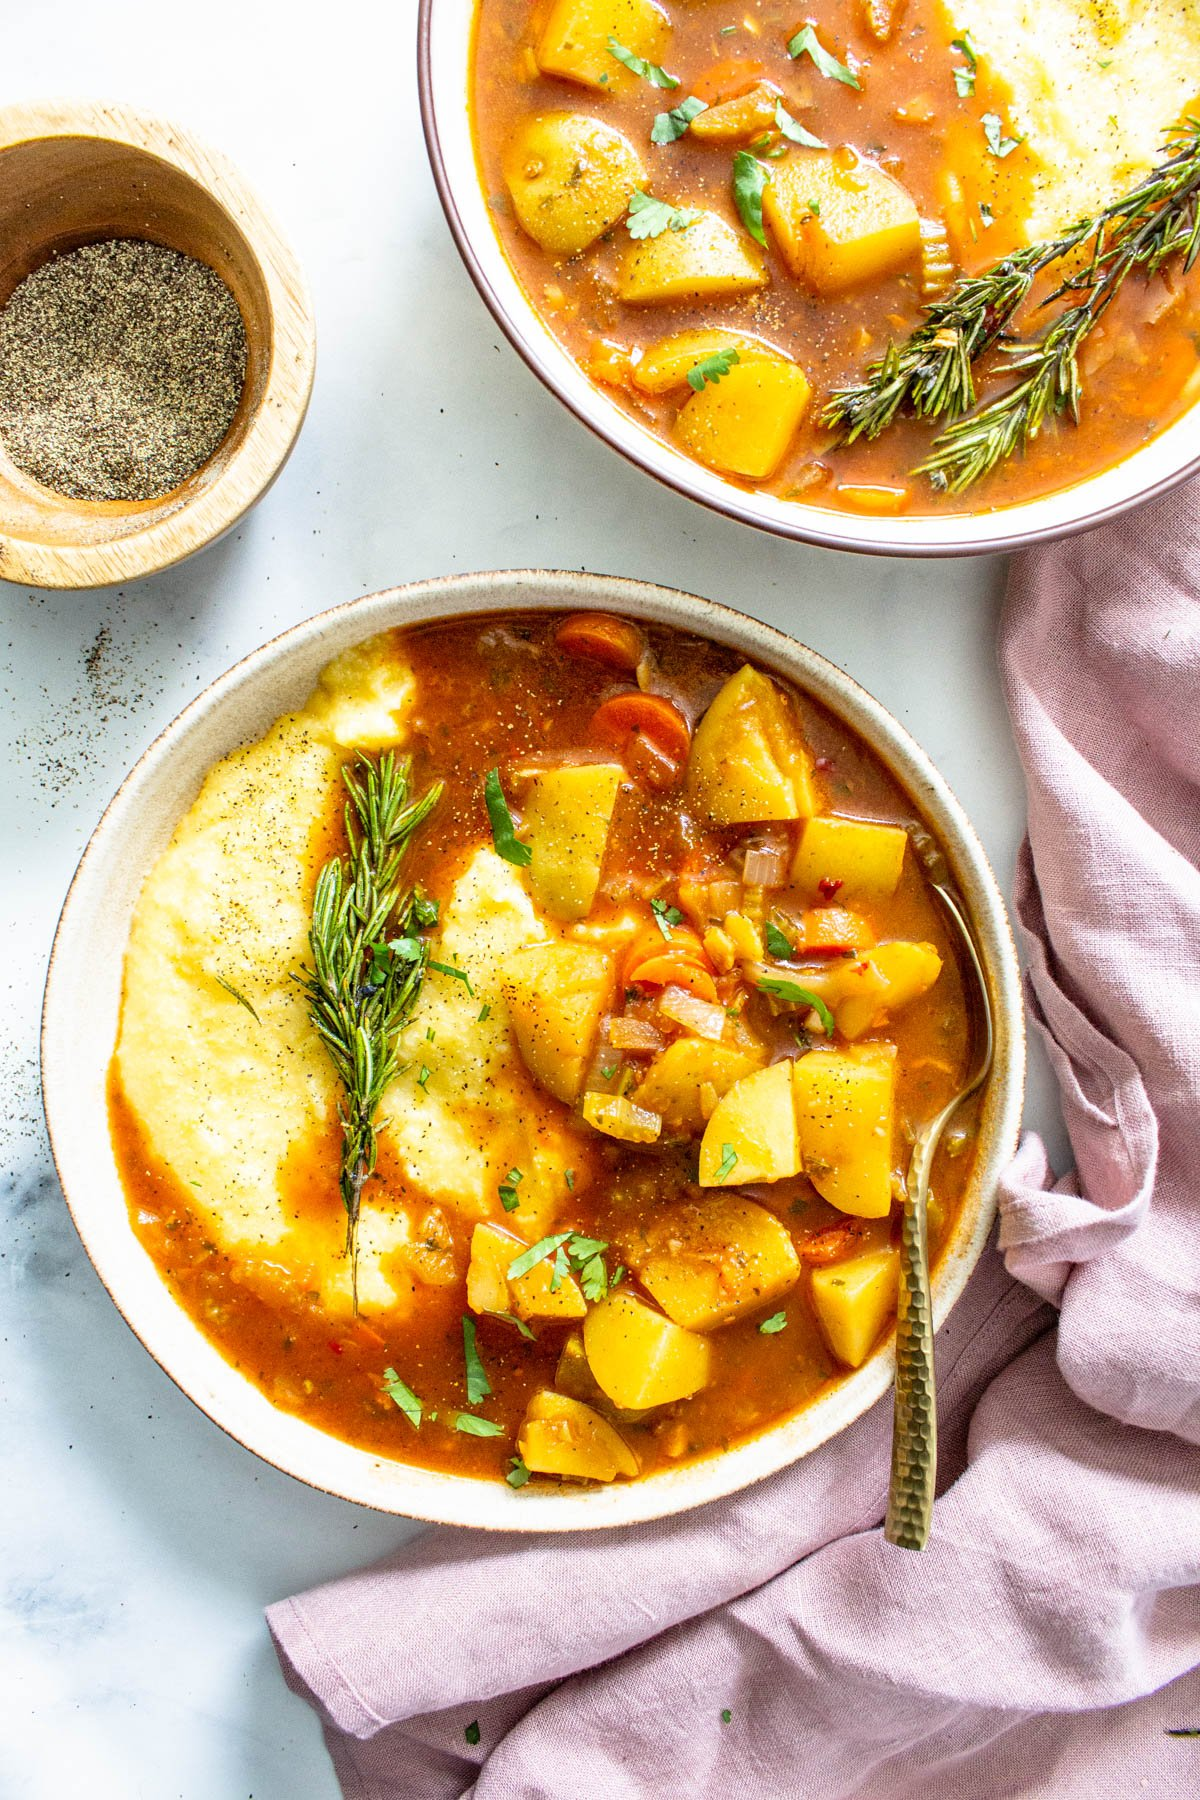 This Vegan Potato Stew with Rosemary Garlic Polenta is a simple dinner that packs tons of flavors and veggies into one easy to make meal   ThisSavoryVegan.com #thissavoryvegan #veganstew #veganpolenta